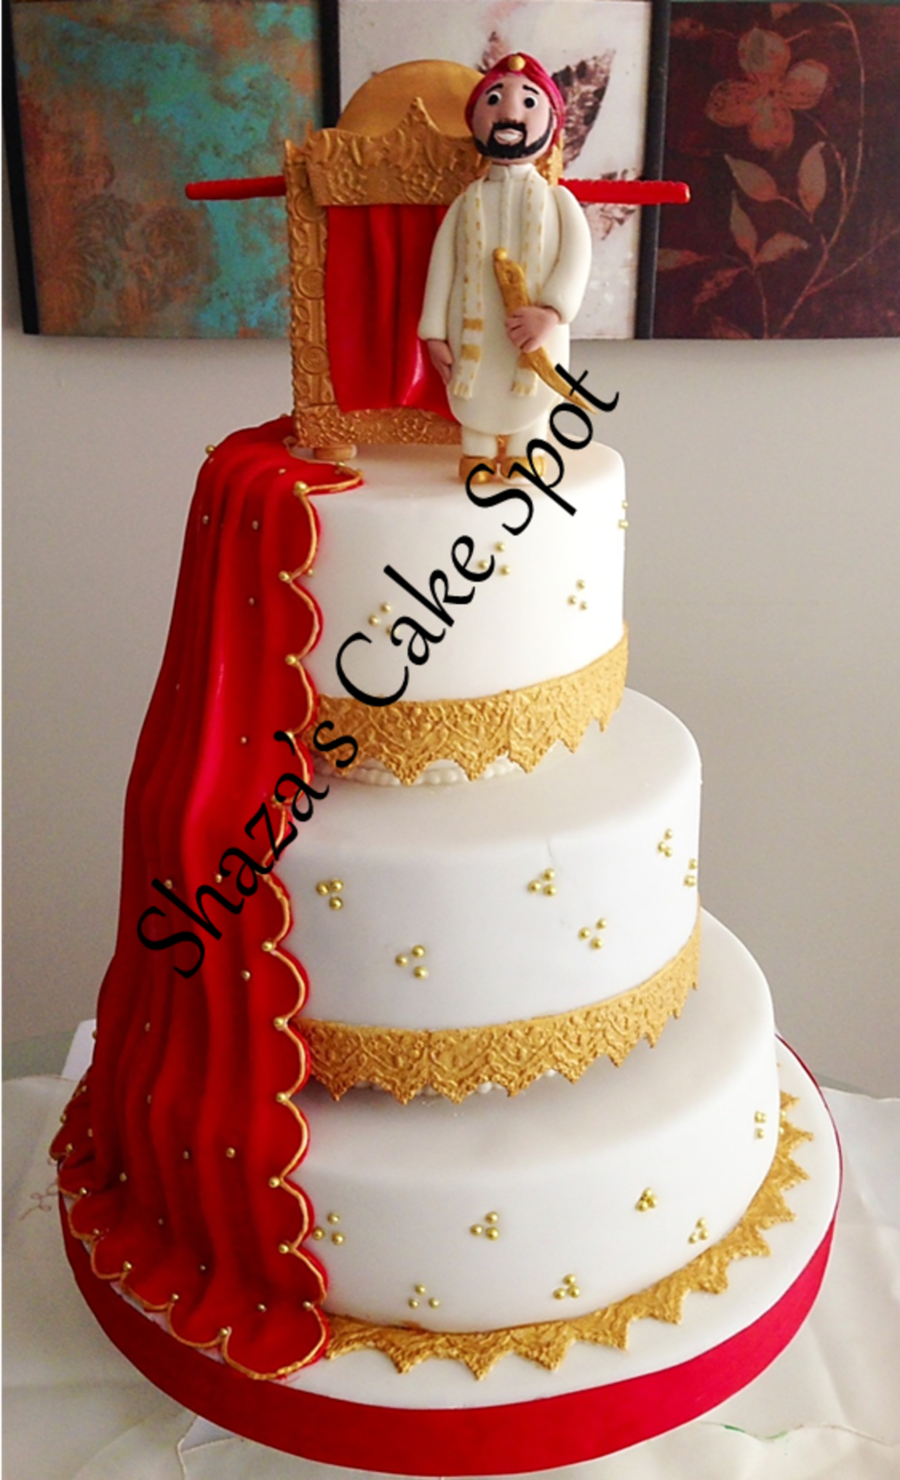 wedding cake red amp gold wedding cake indian theme cakecentral 23659